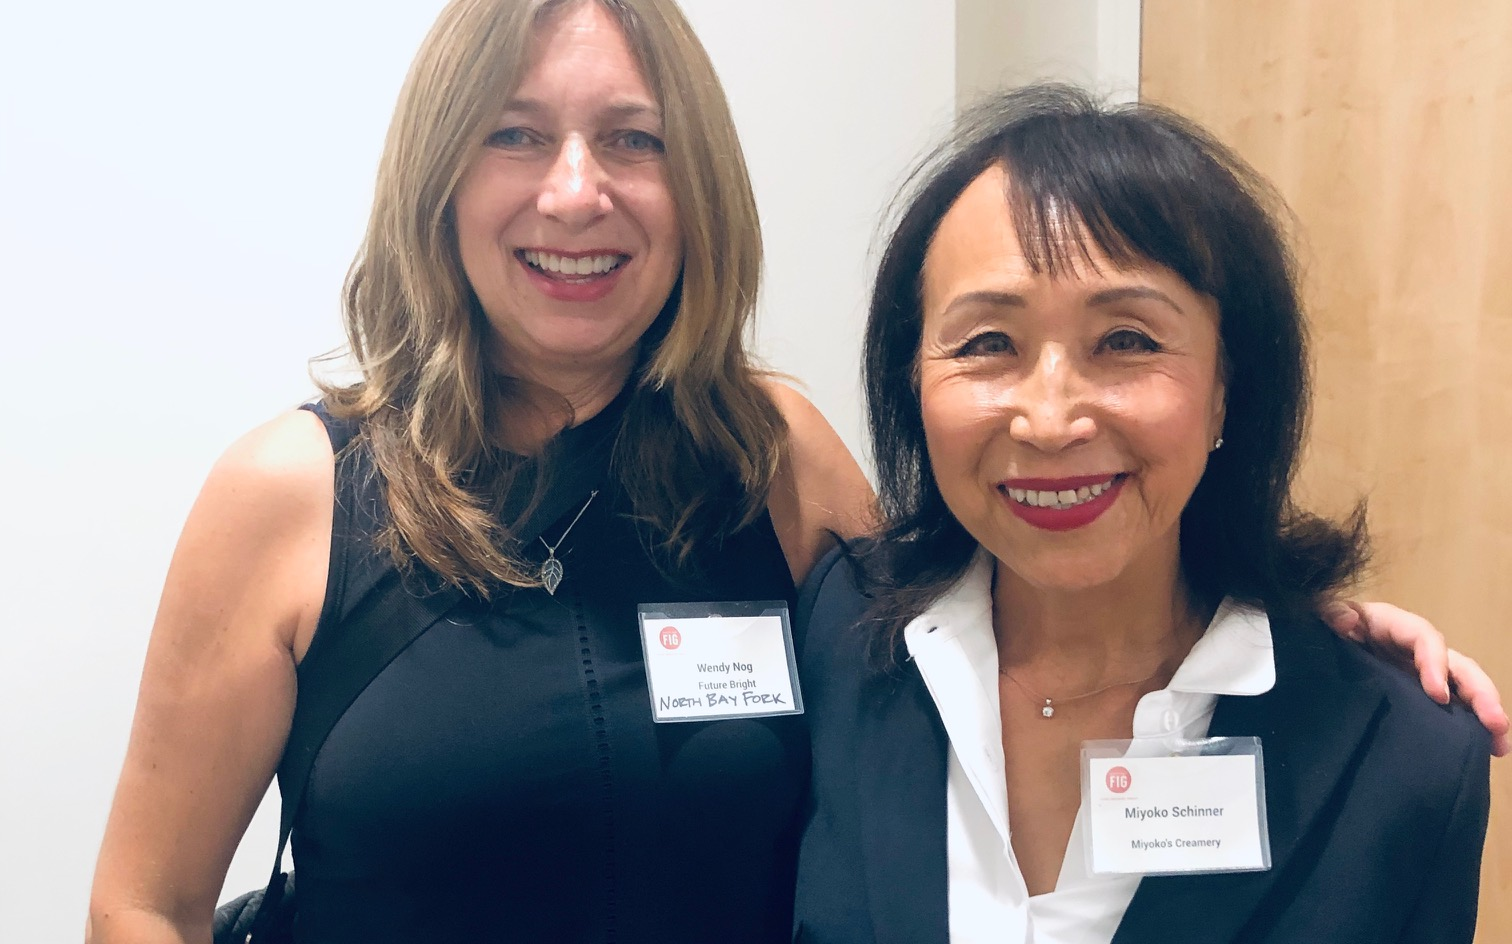 Future Bright Founder Wendy Louise Nog with Miyoko Schinner, founder of Miyoko's Vegan Cheeses